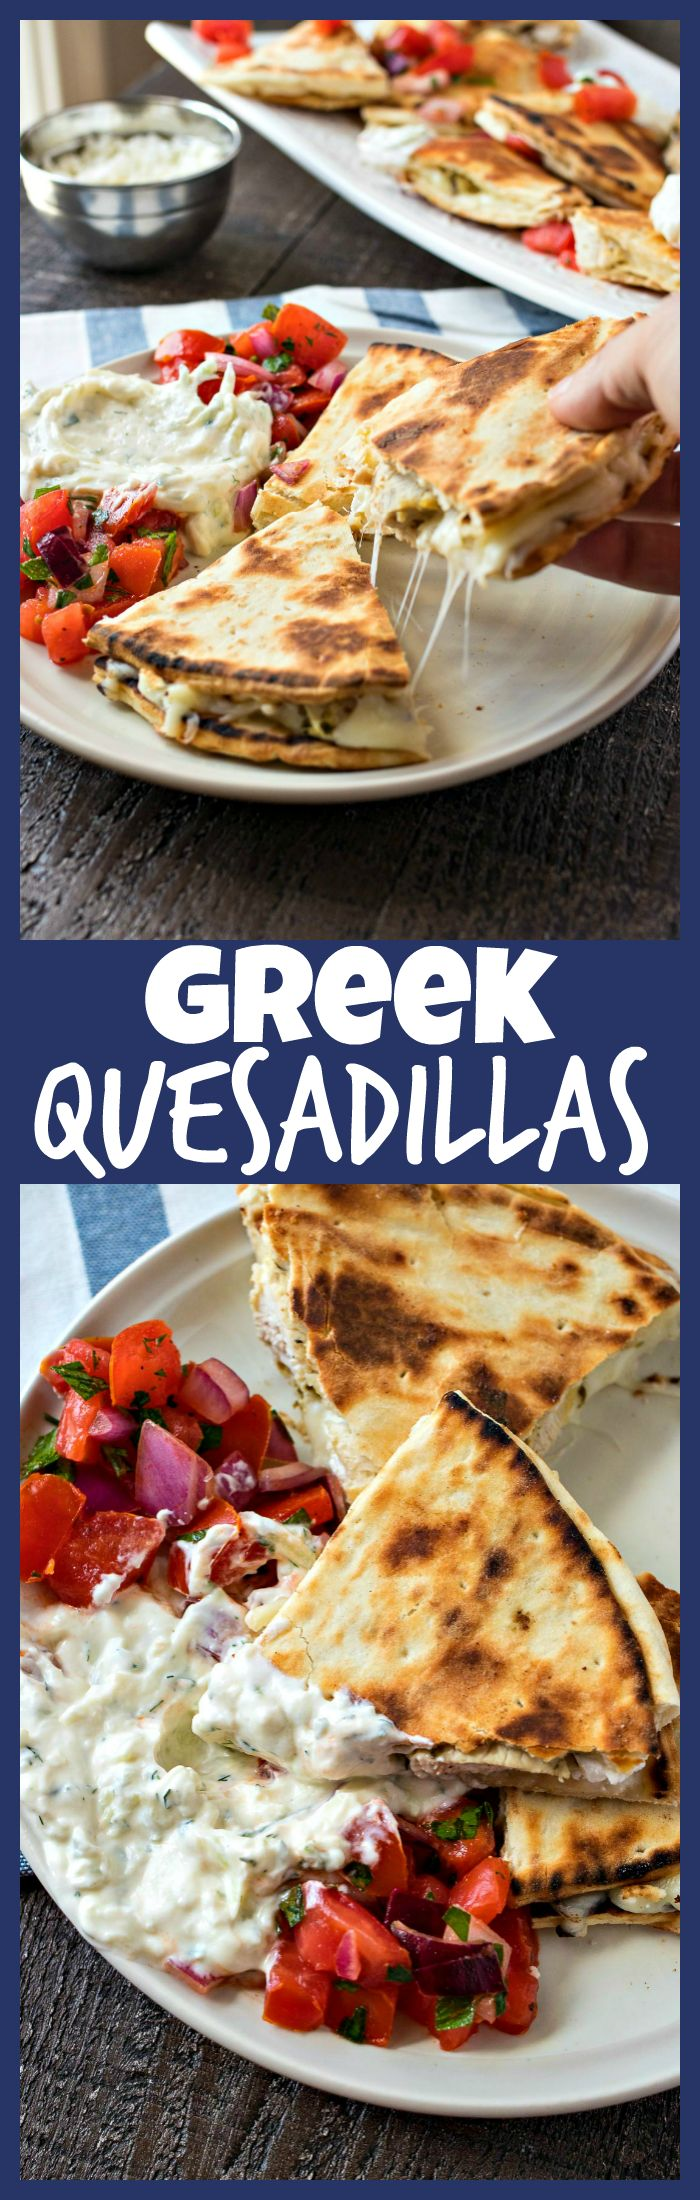 Greek Chicken Quesadillas – Chewy flatbread covered in mozzarella and feta cheese and Greek-marinated chicken and grilled to perfection. Served with a tomato salad and homemade tzatziki sauce.